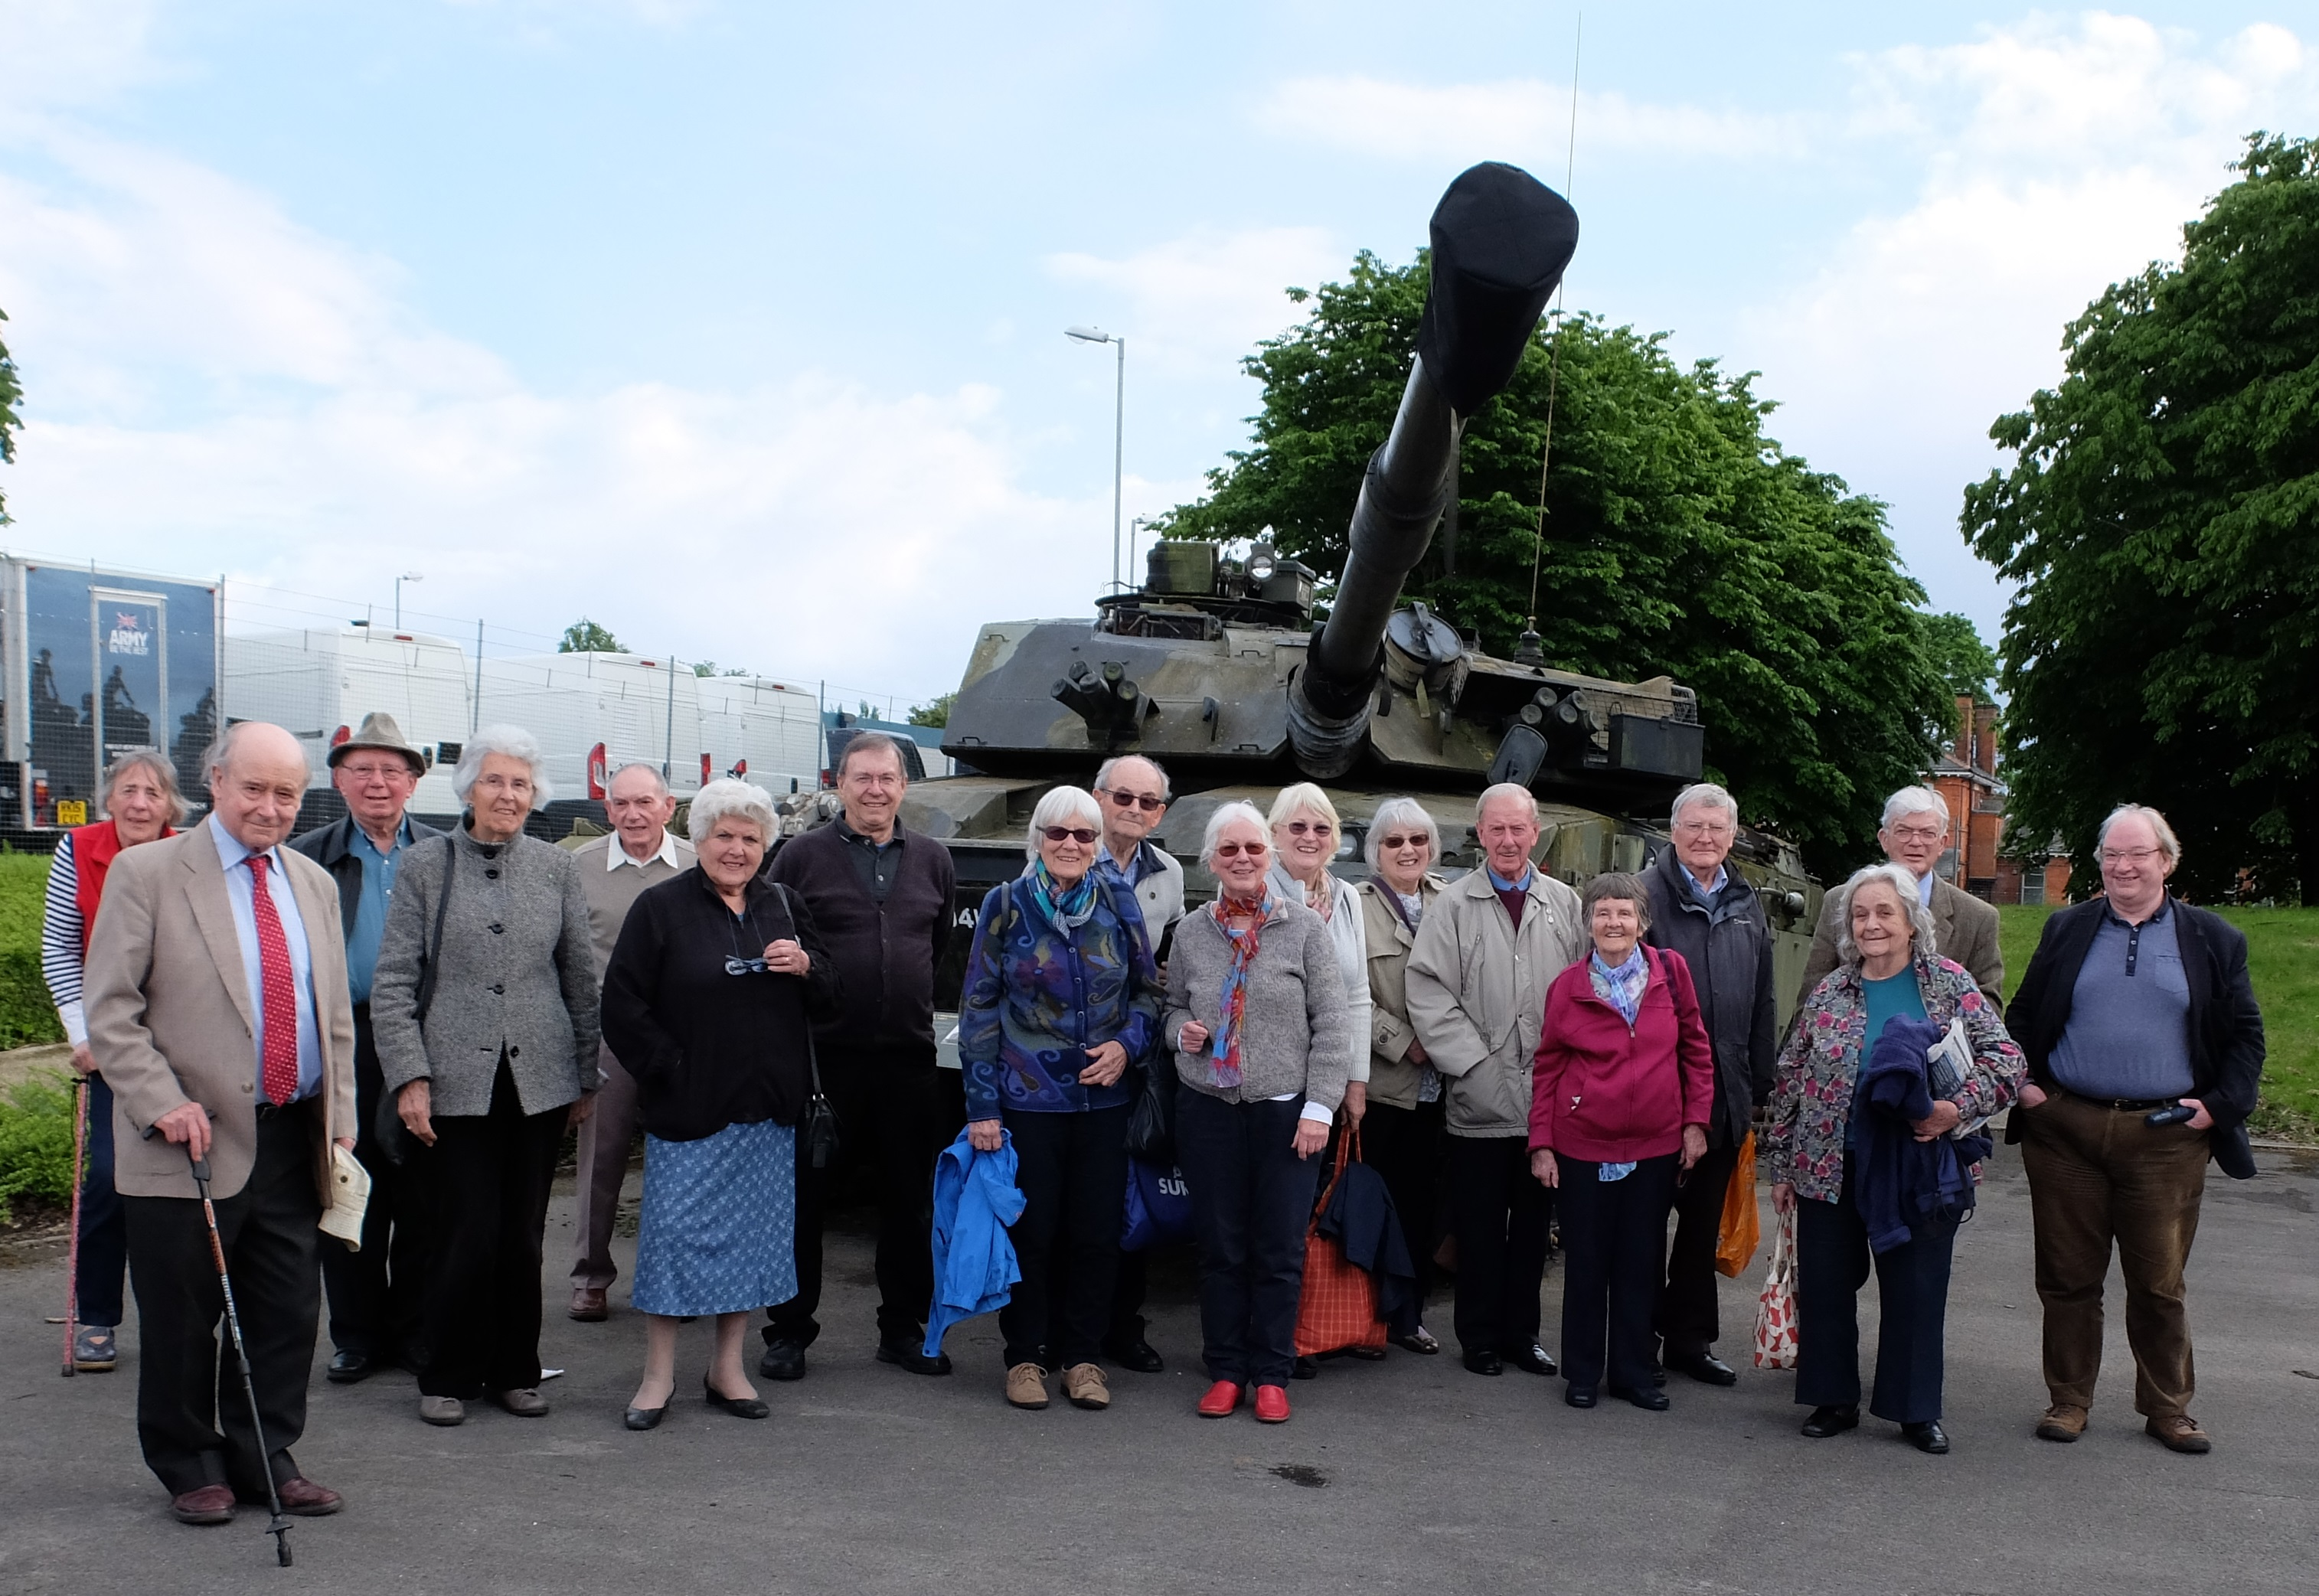 Group photo of the Friends at the Aldershot Military Museum after the Eltham Palace visit on the 19th May 2017.